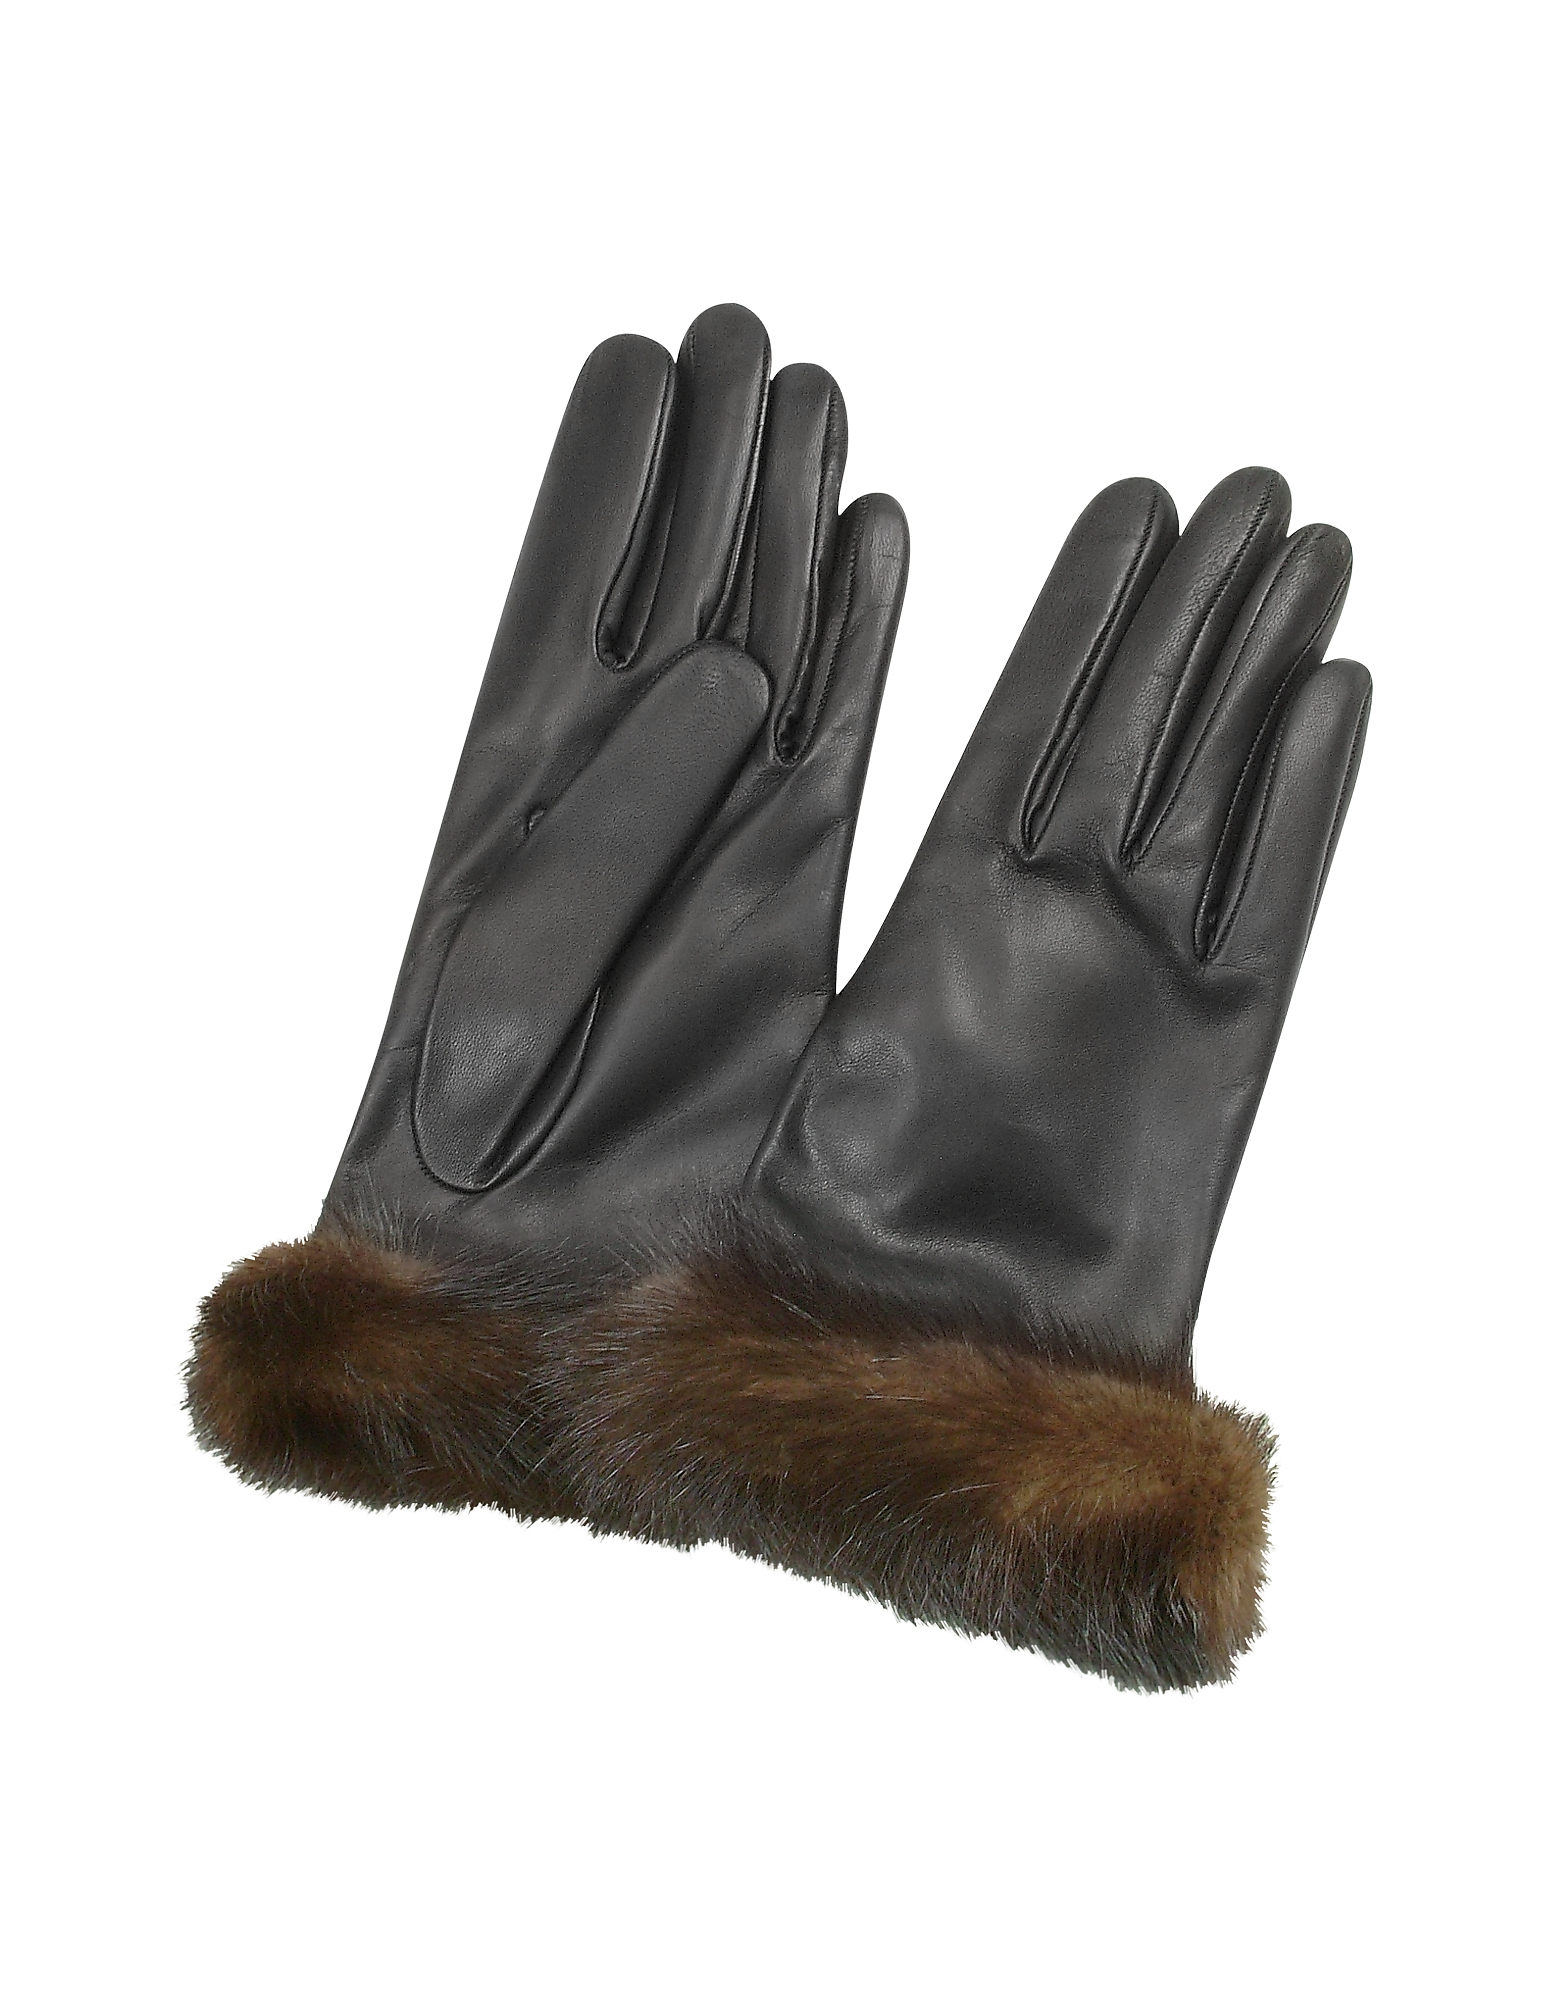 Forzieri Designer Women's Gloves, Women's Black Italian Nappa Leather Gloves